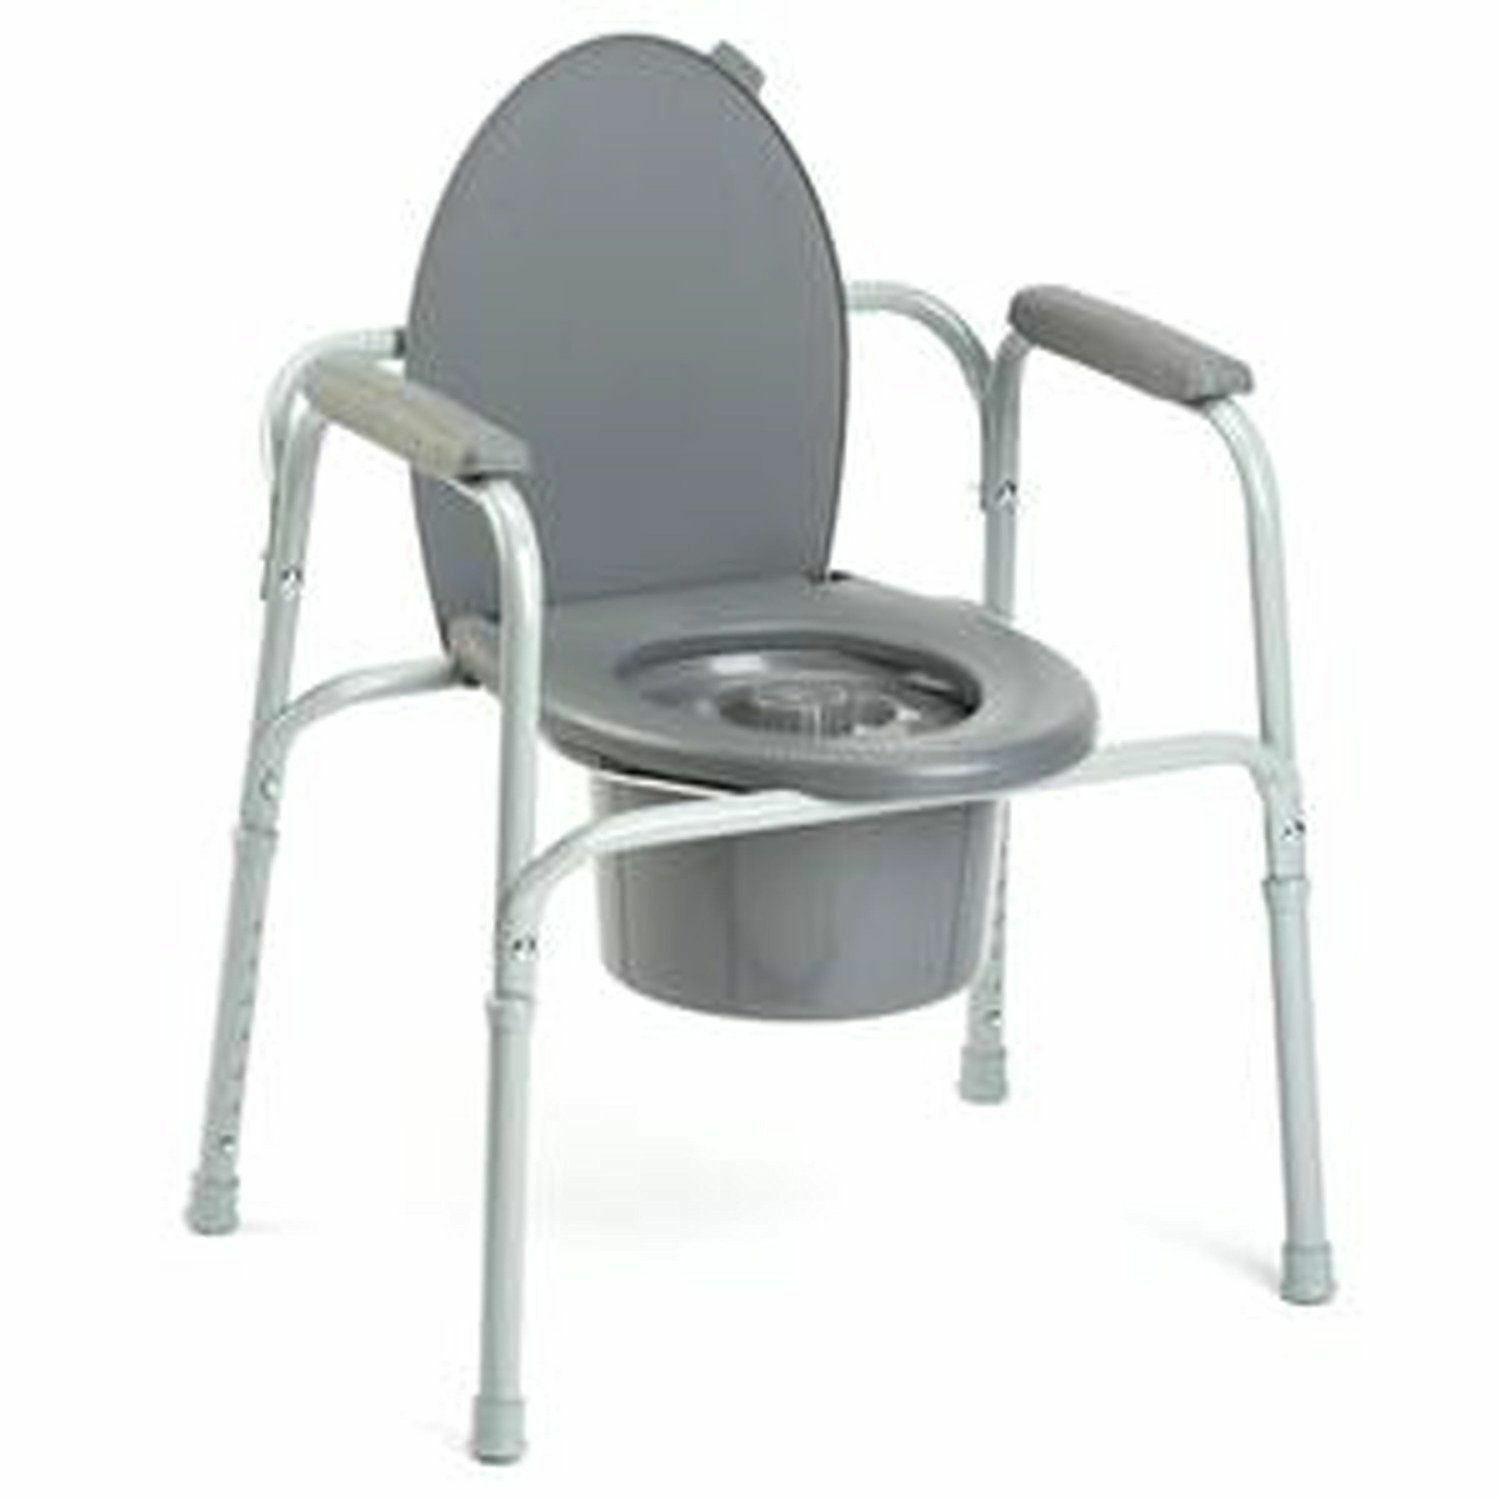 INVACARE PORTABLE BEDSIDE 3-in-One Commode Toilet Safety Frame ...